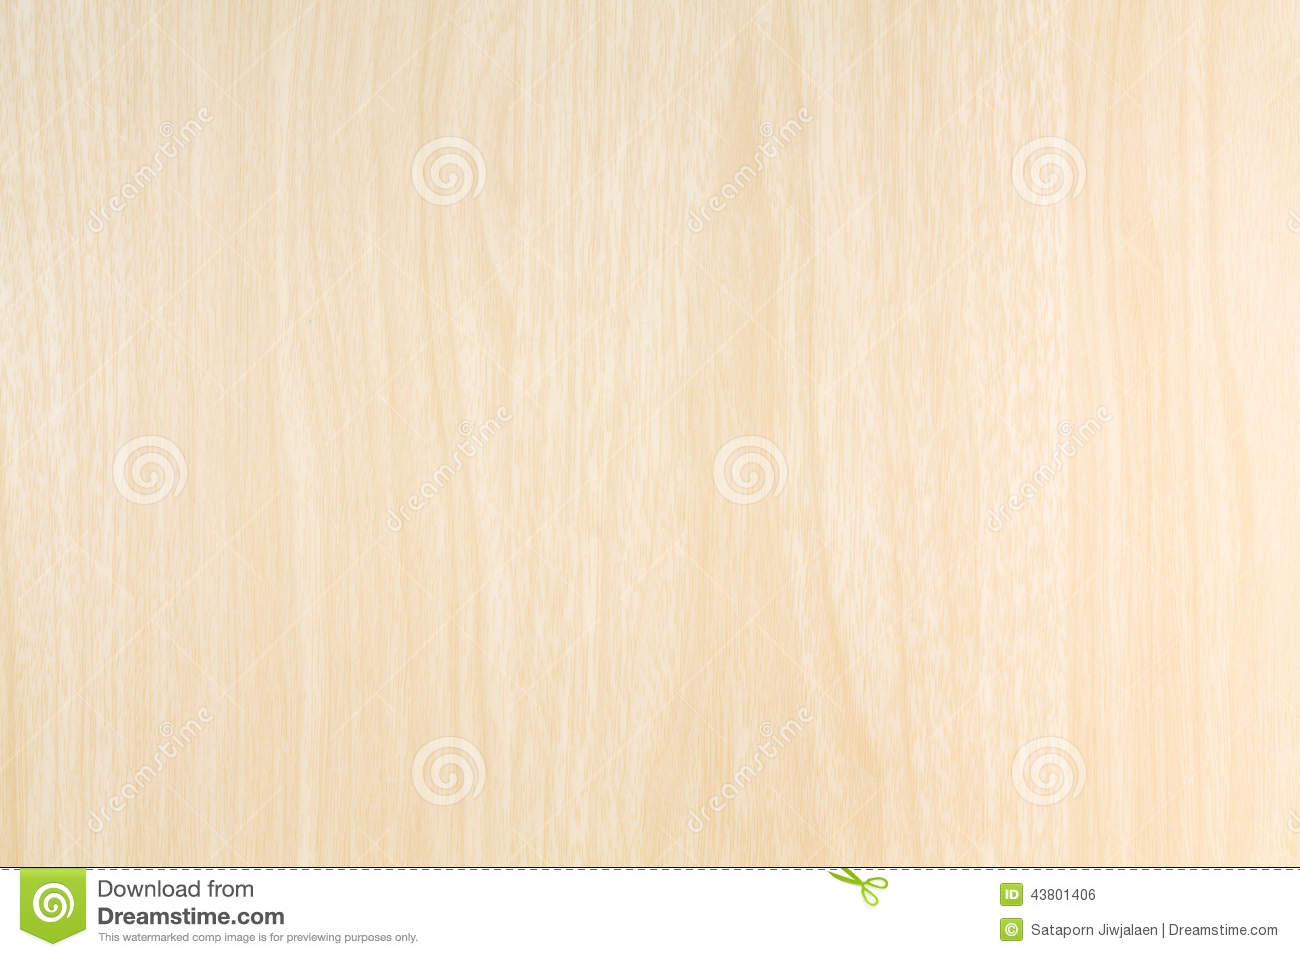 Wood Blonde Texture Stock Photo Image 43801406